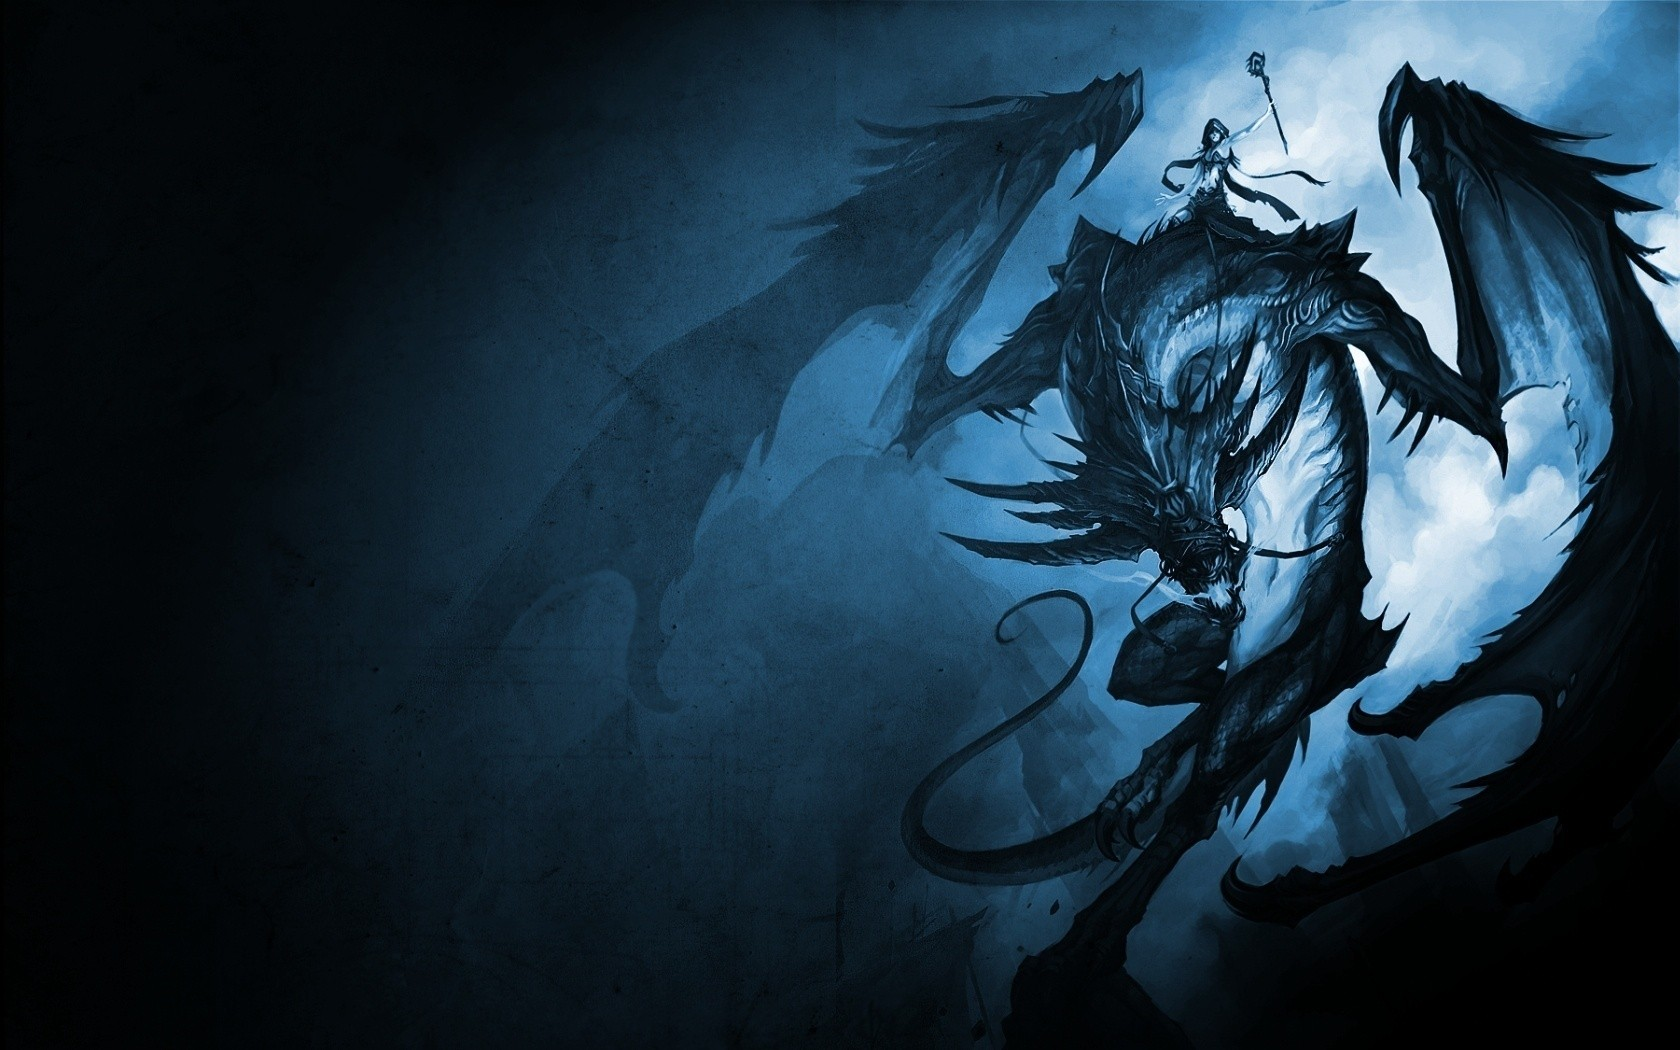 Mage Dragons Wallpaper 1680x1050 Mage Dragons Fantasy Art Artwork 1680x1050